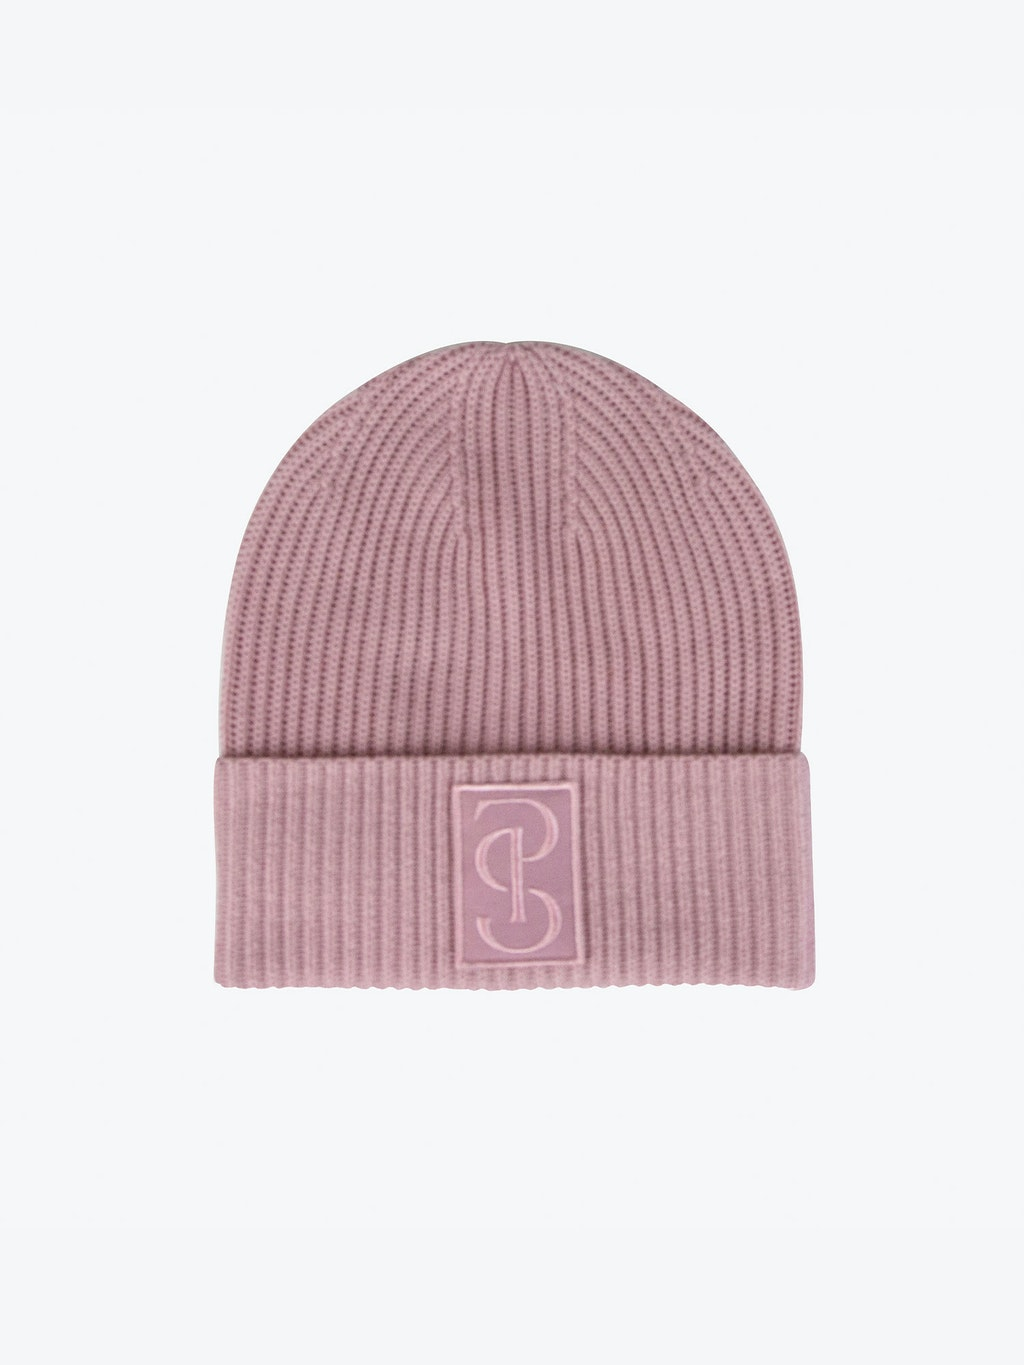 Ps of Sweden Beanie Sally in Blush